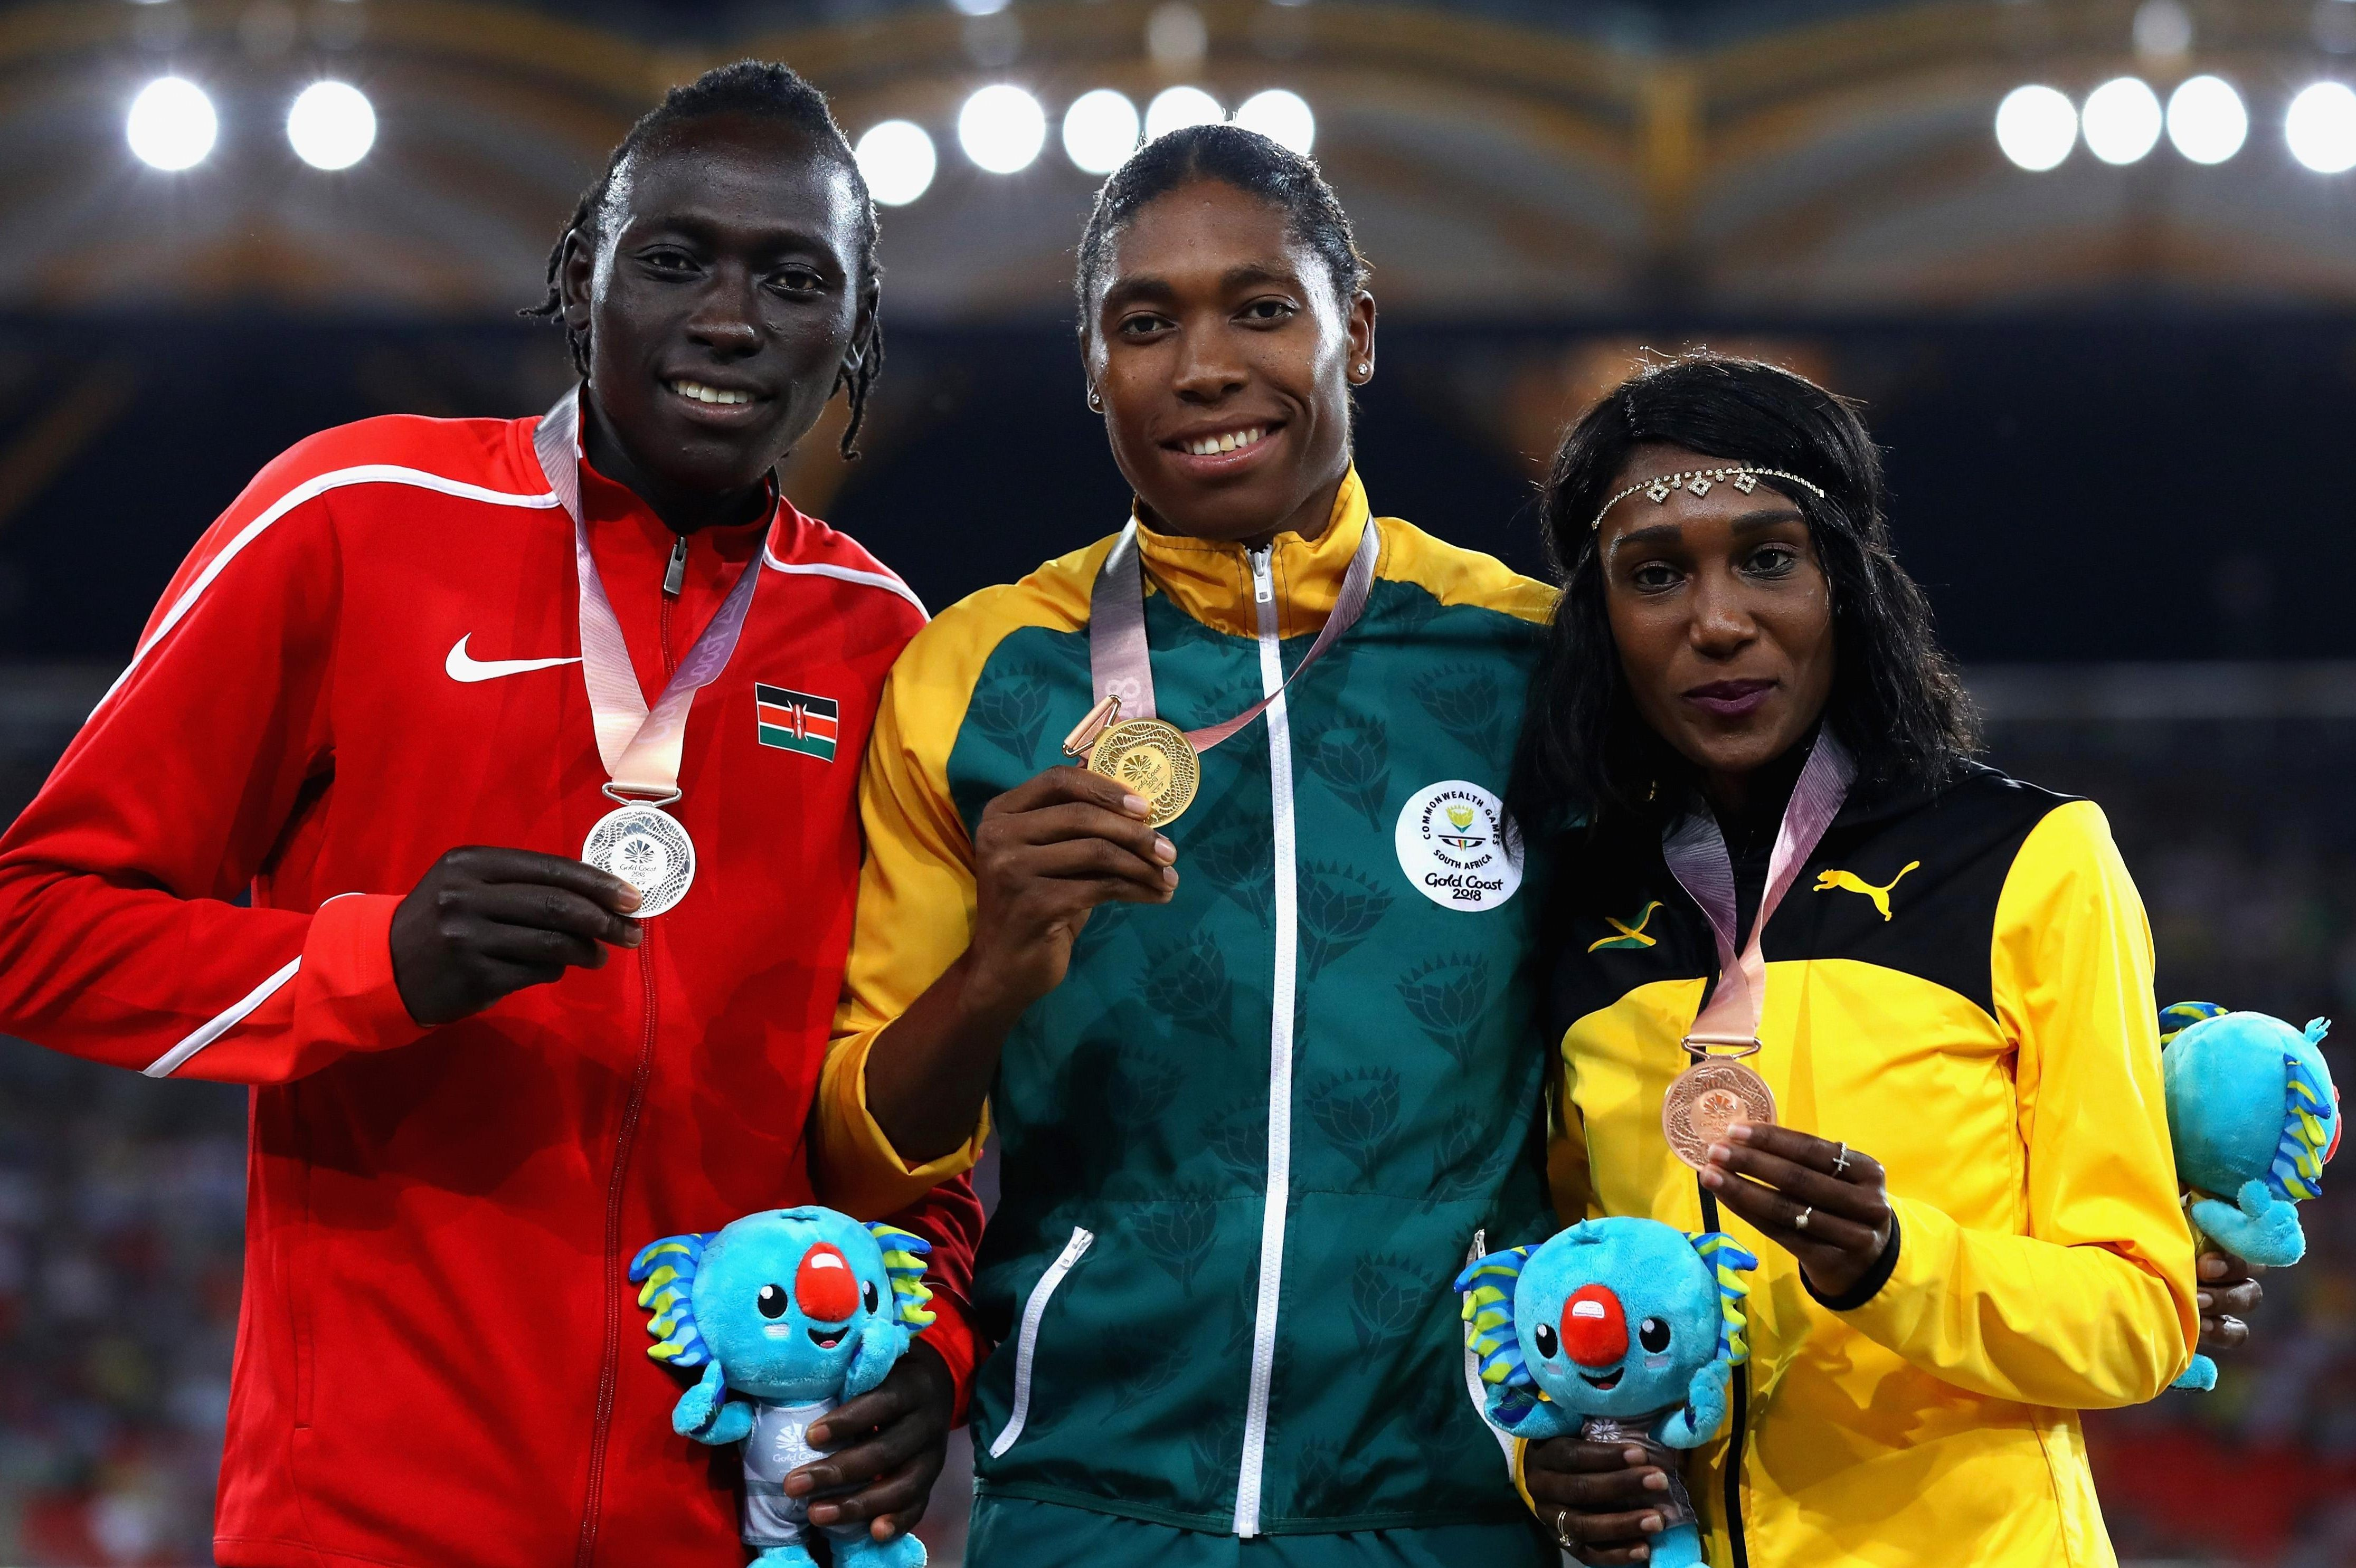 Caster Semenya (middle) brims with delight after scooping the 800m gold medal